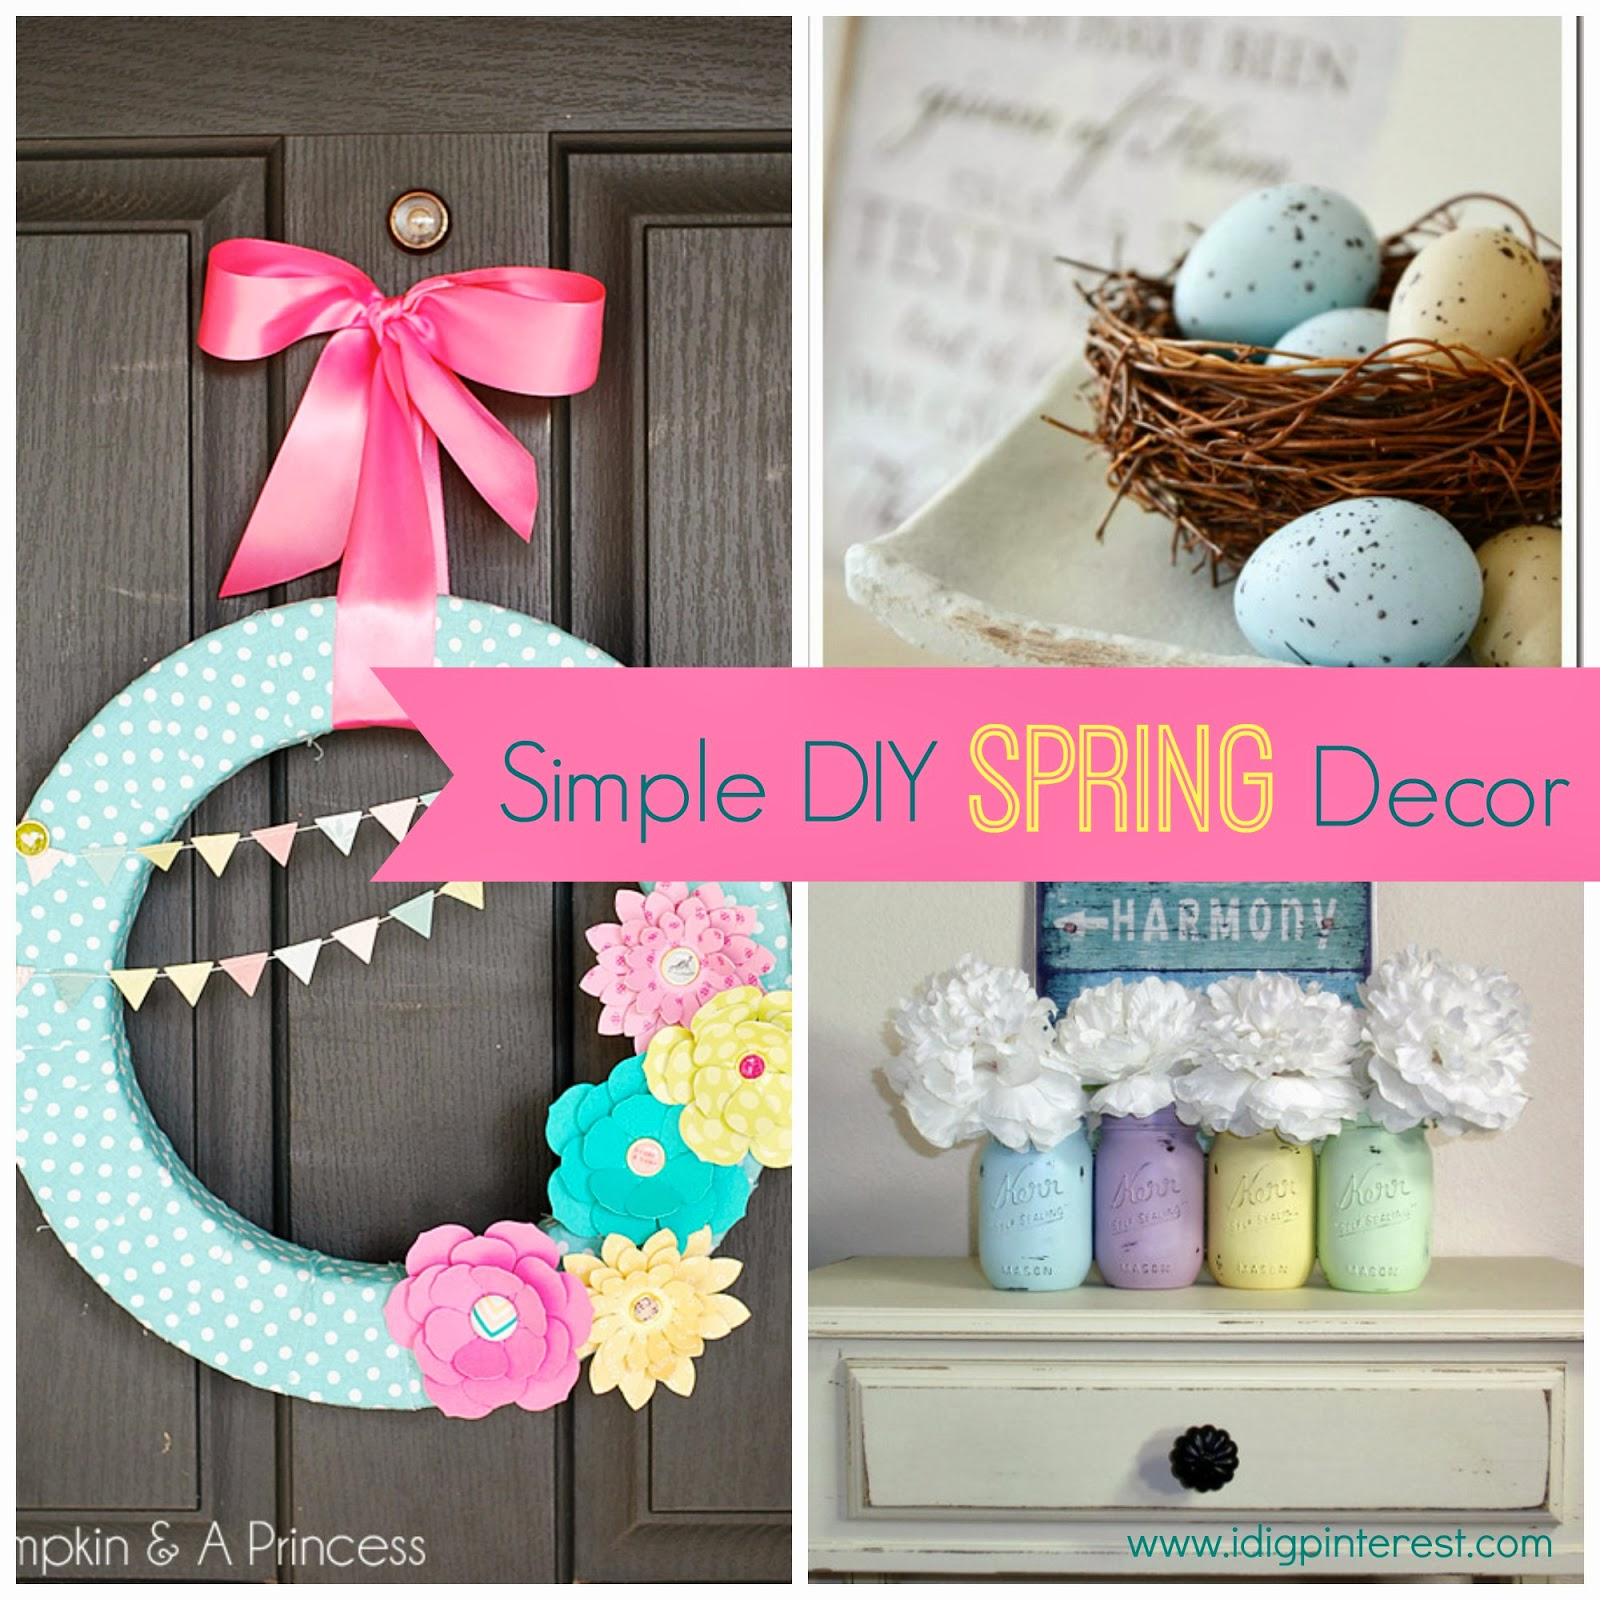 Simple DIY Spring Decor Ideas I Dig Pinterest